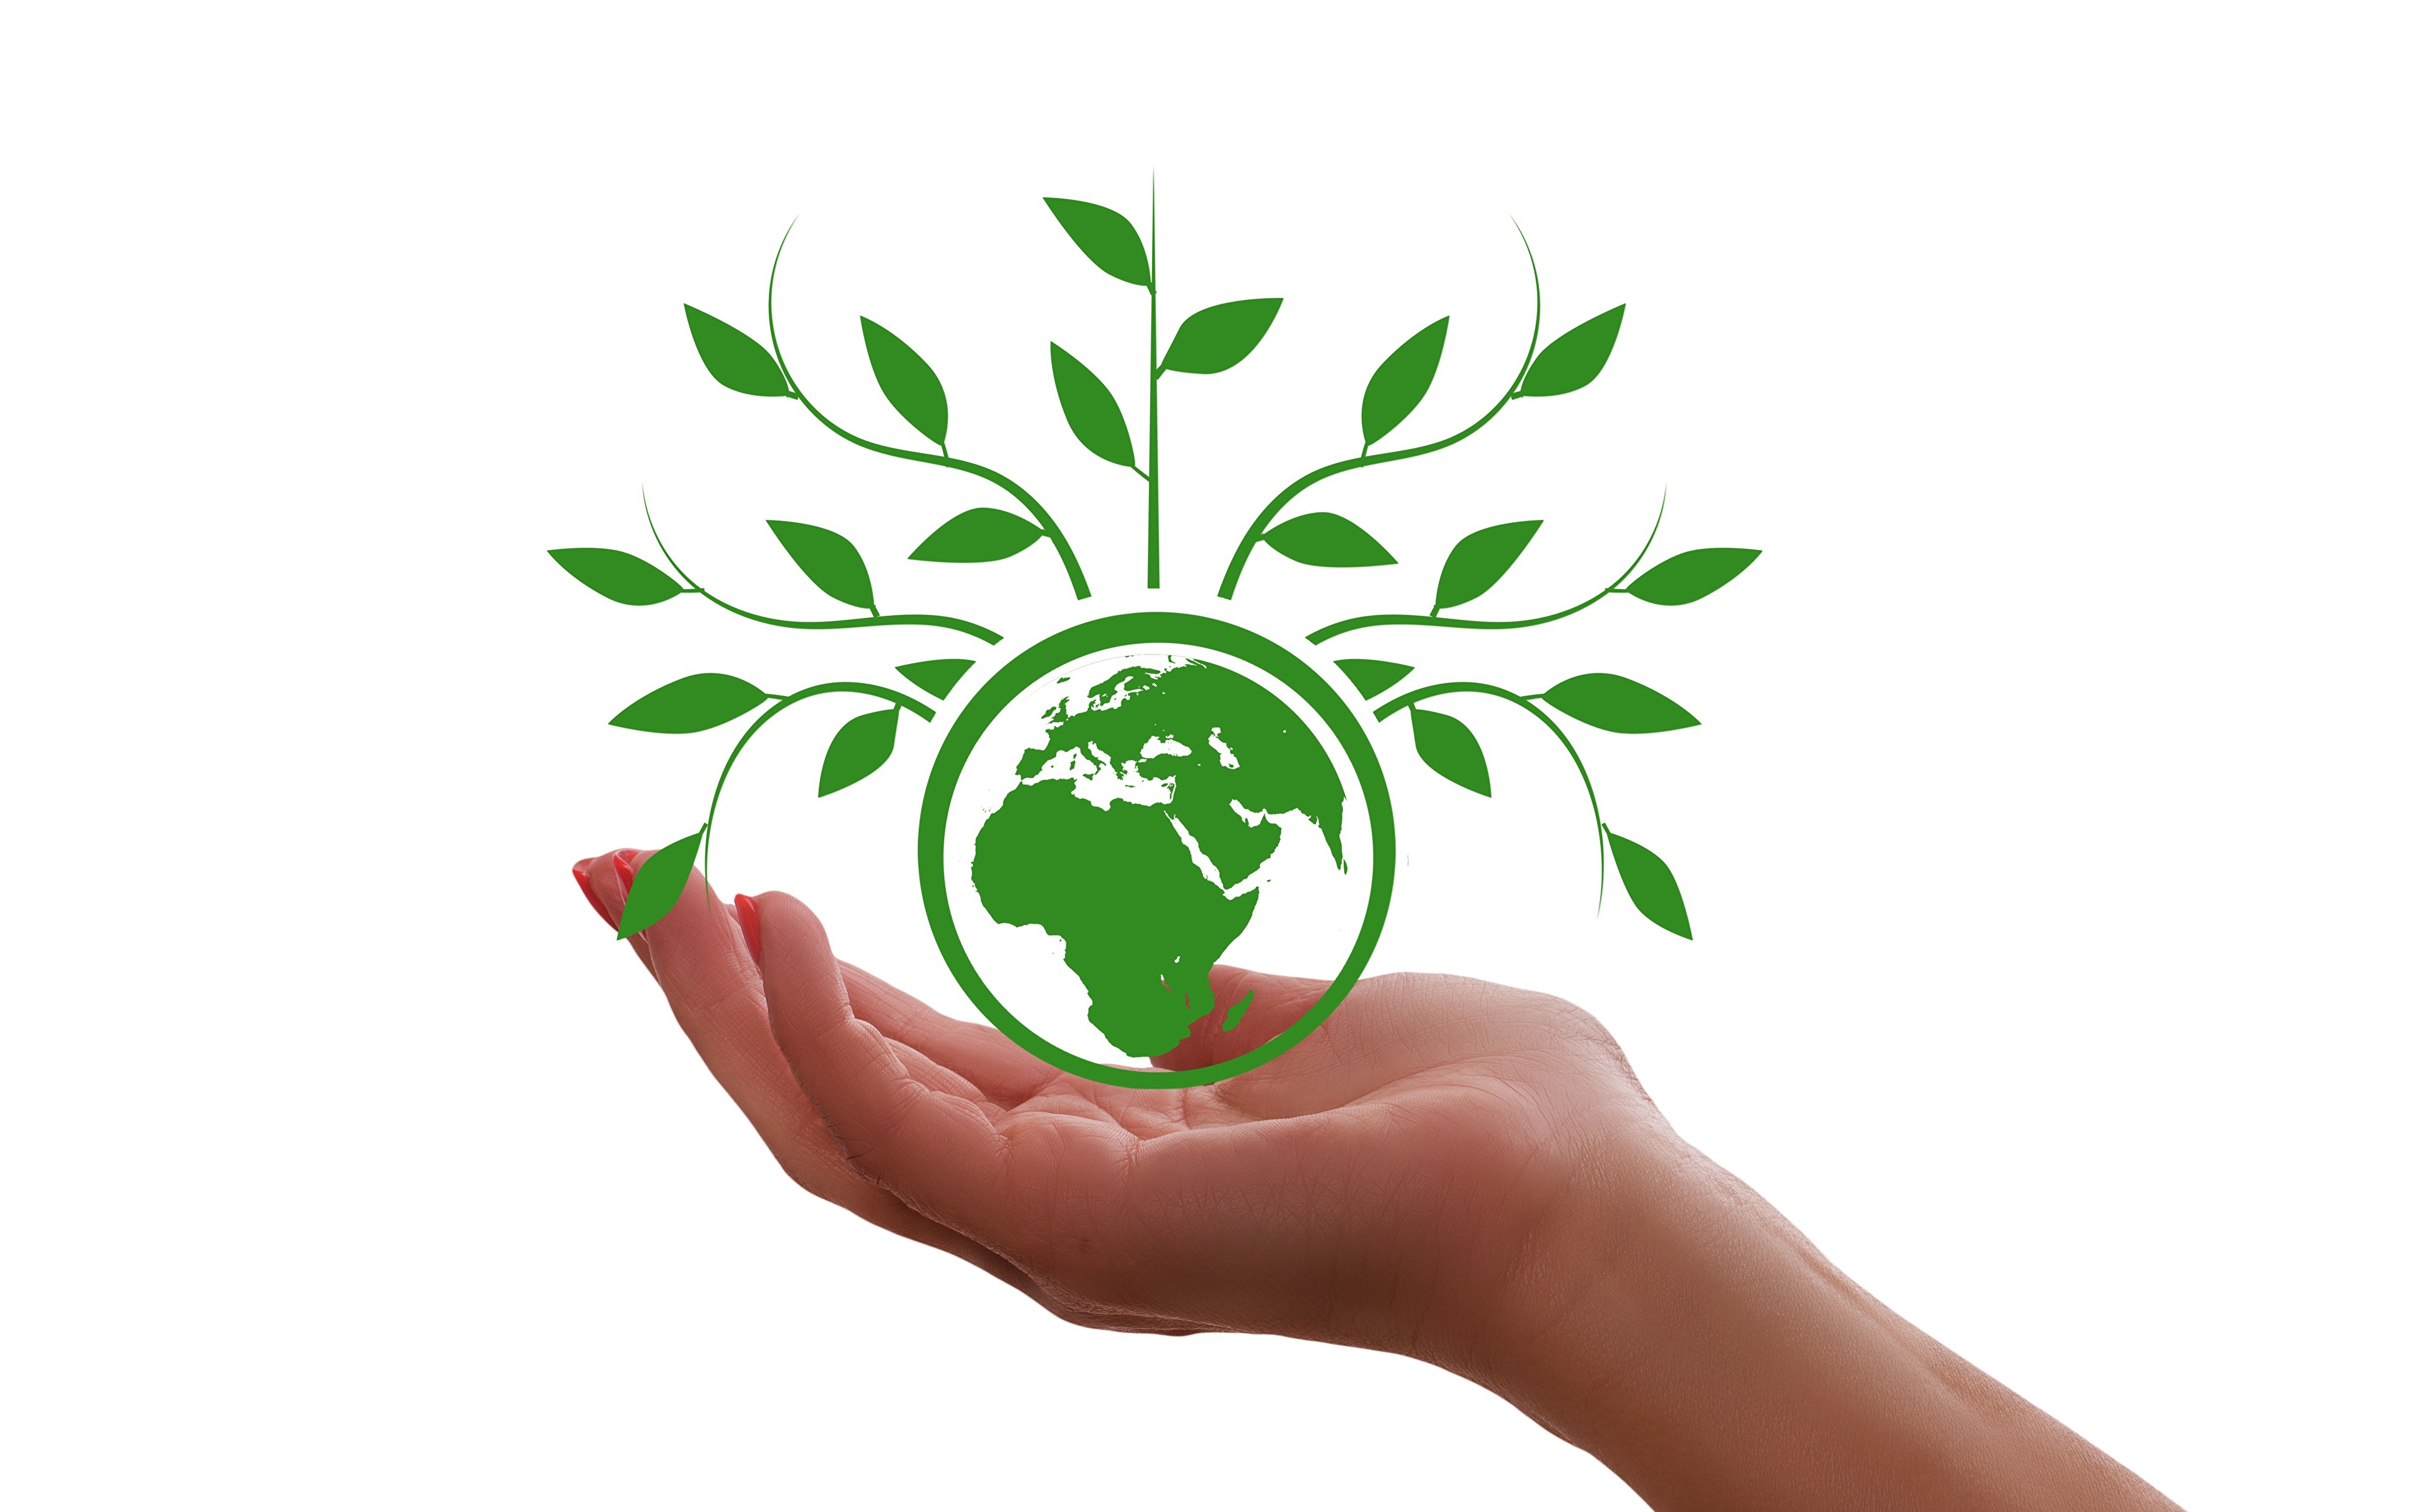 Wallpaper Earth Planet Hands Plants White Background 3840x2400